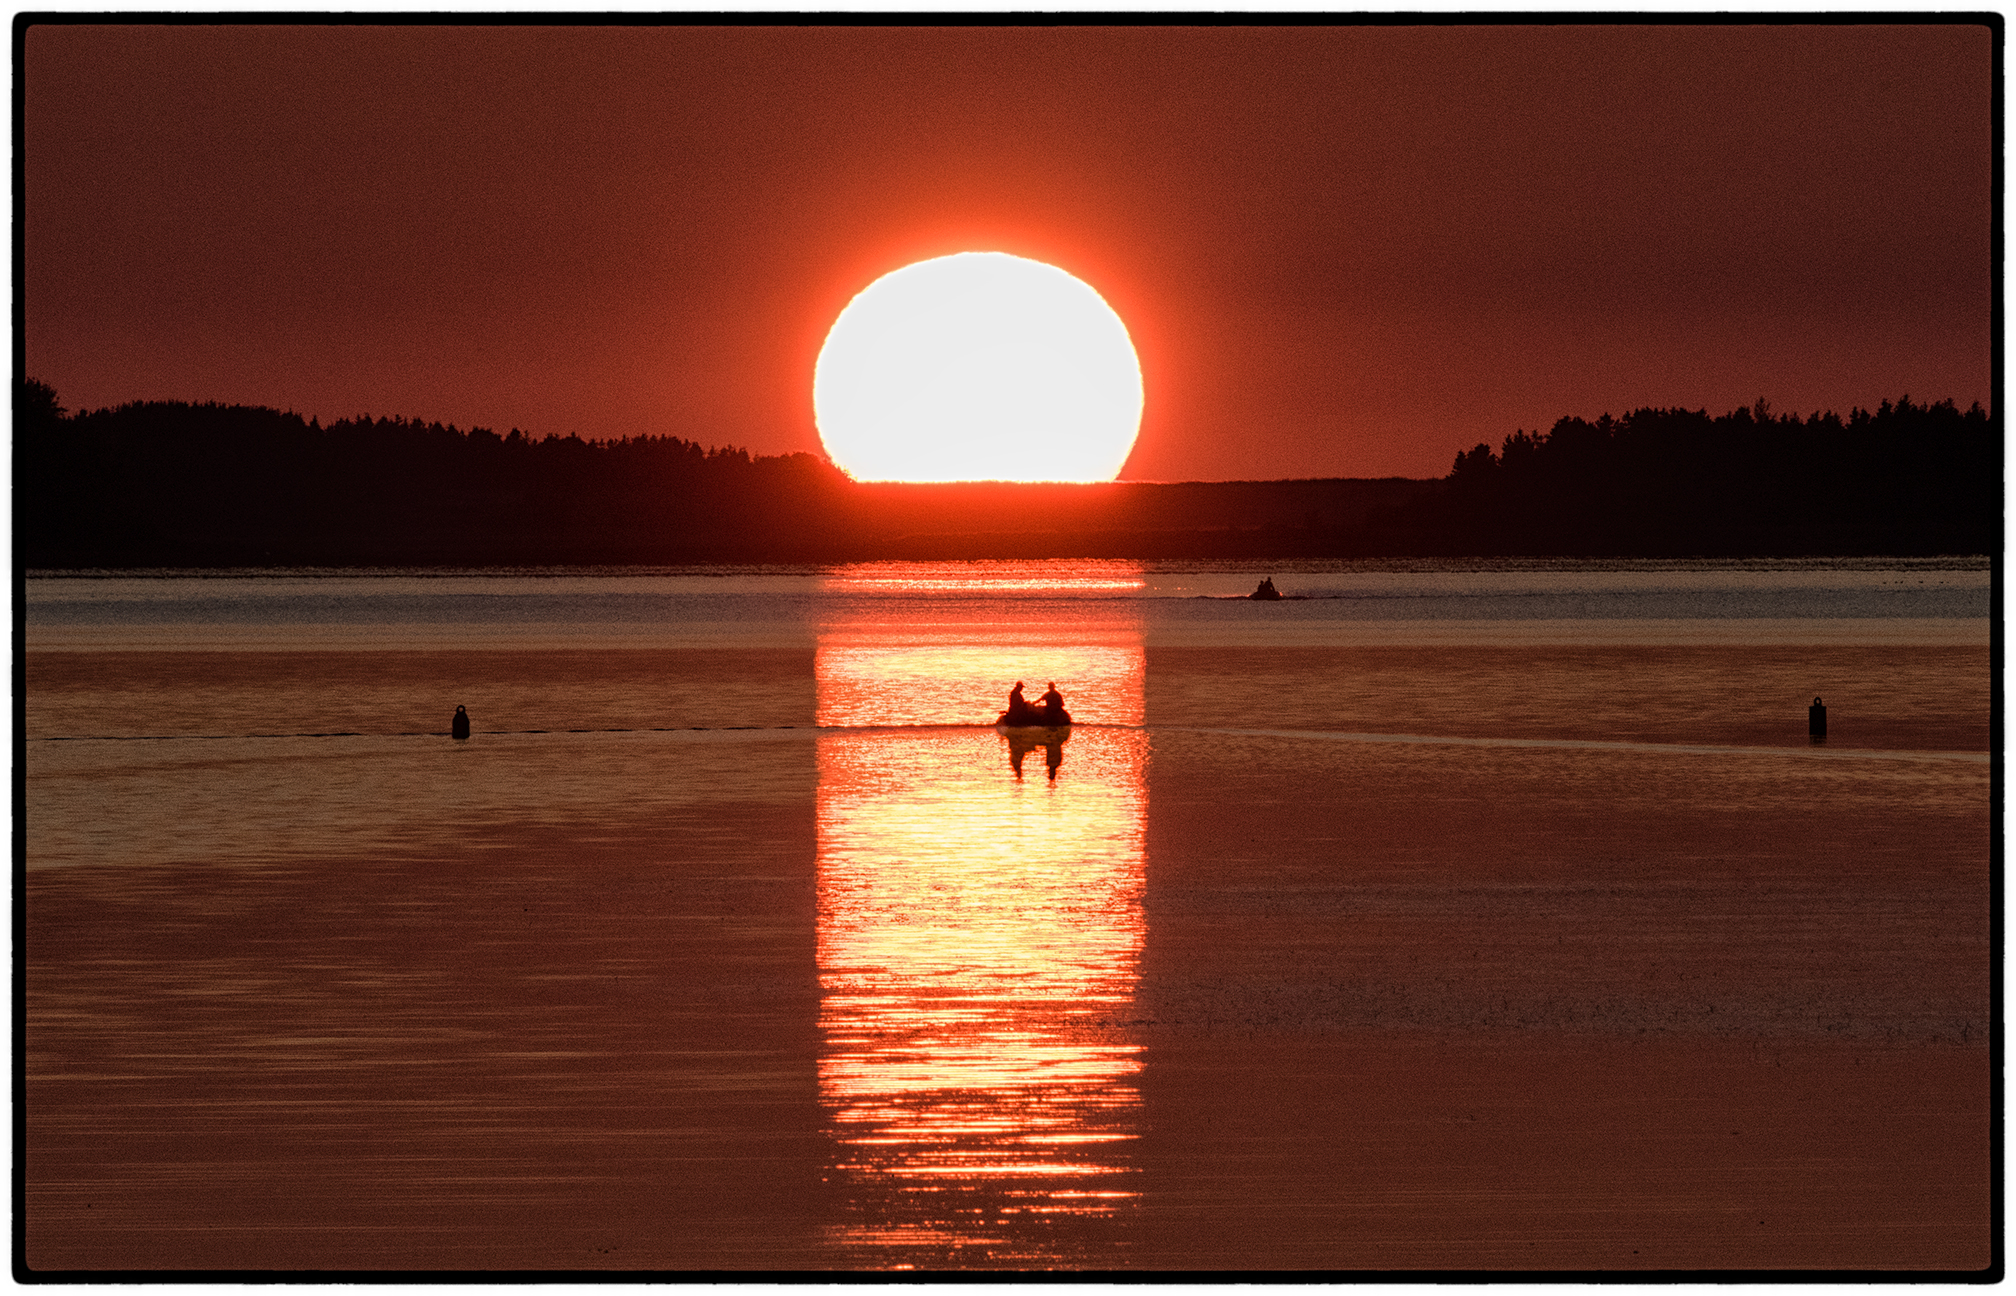 Sunset, Mabou harbor, Cape Breton Island